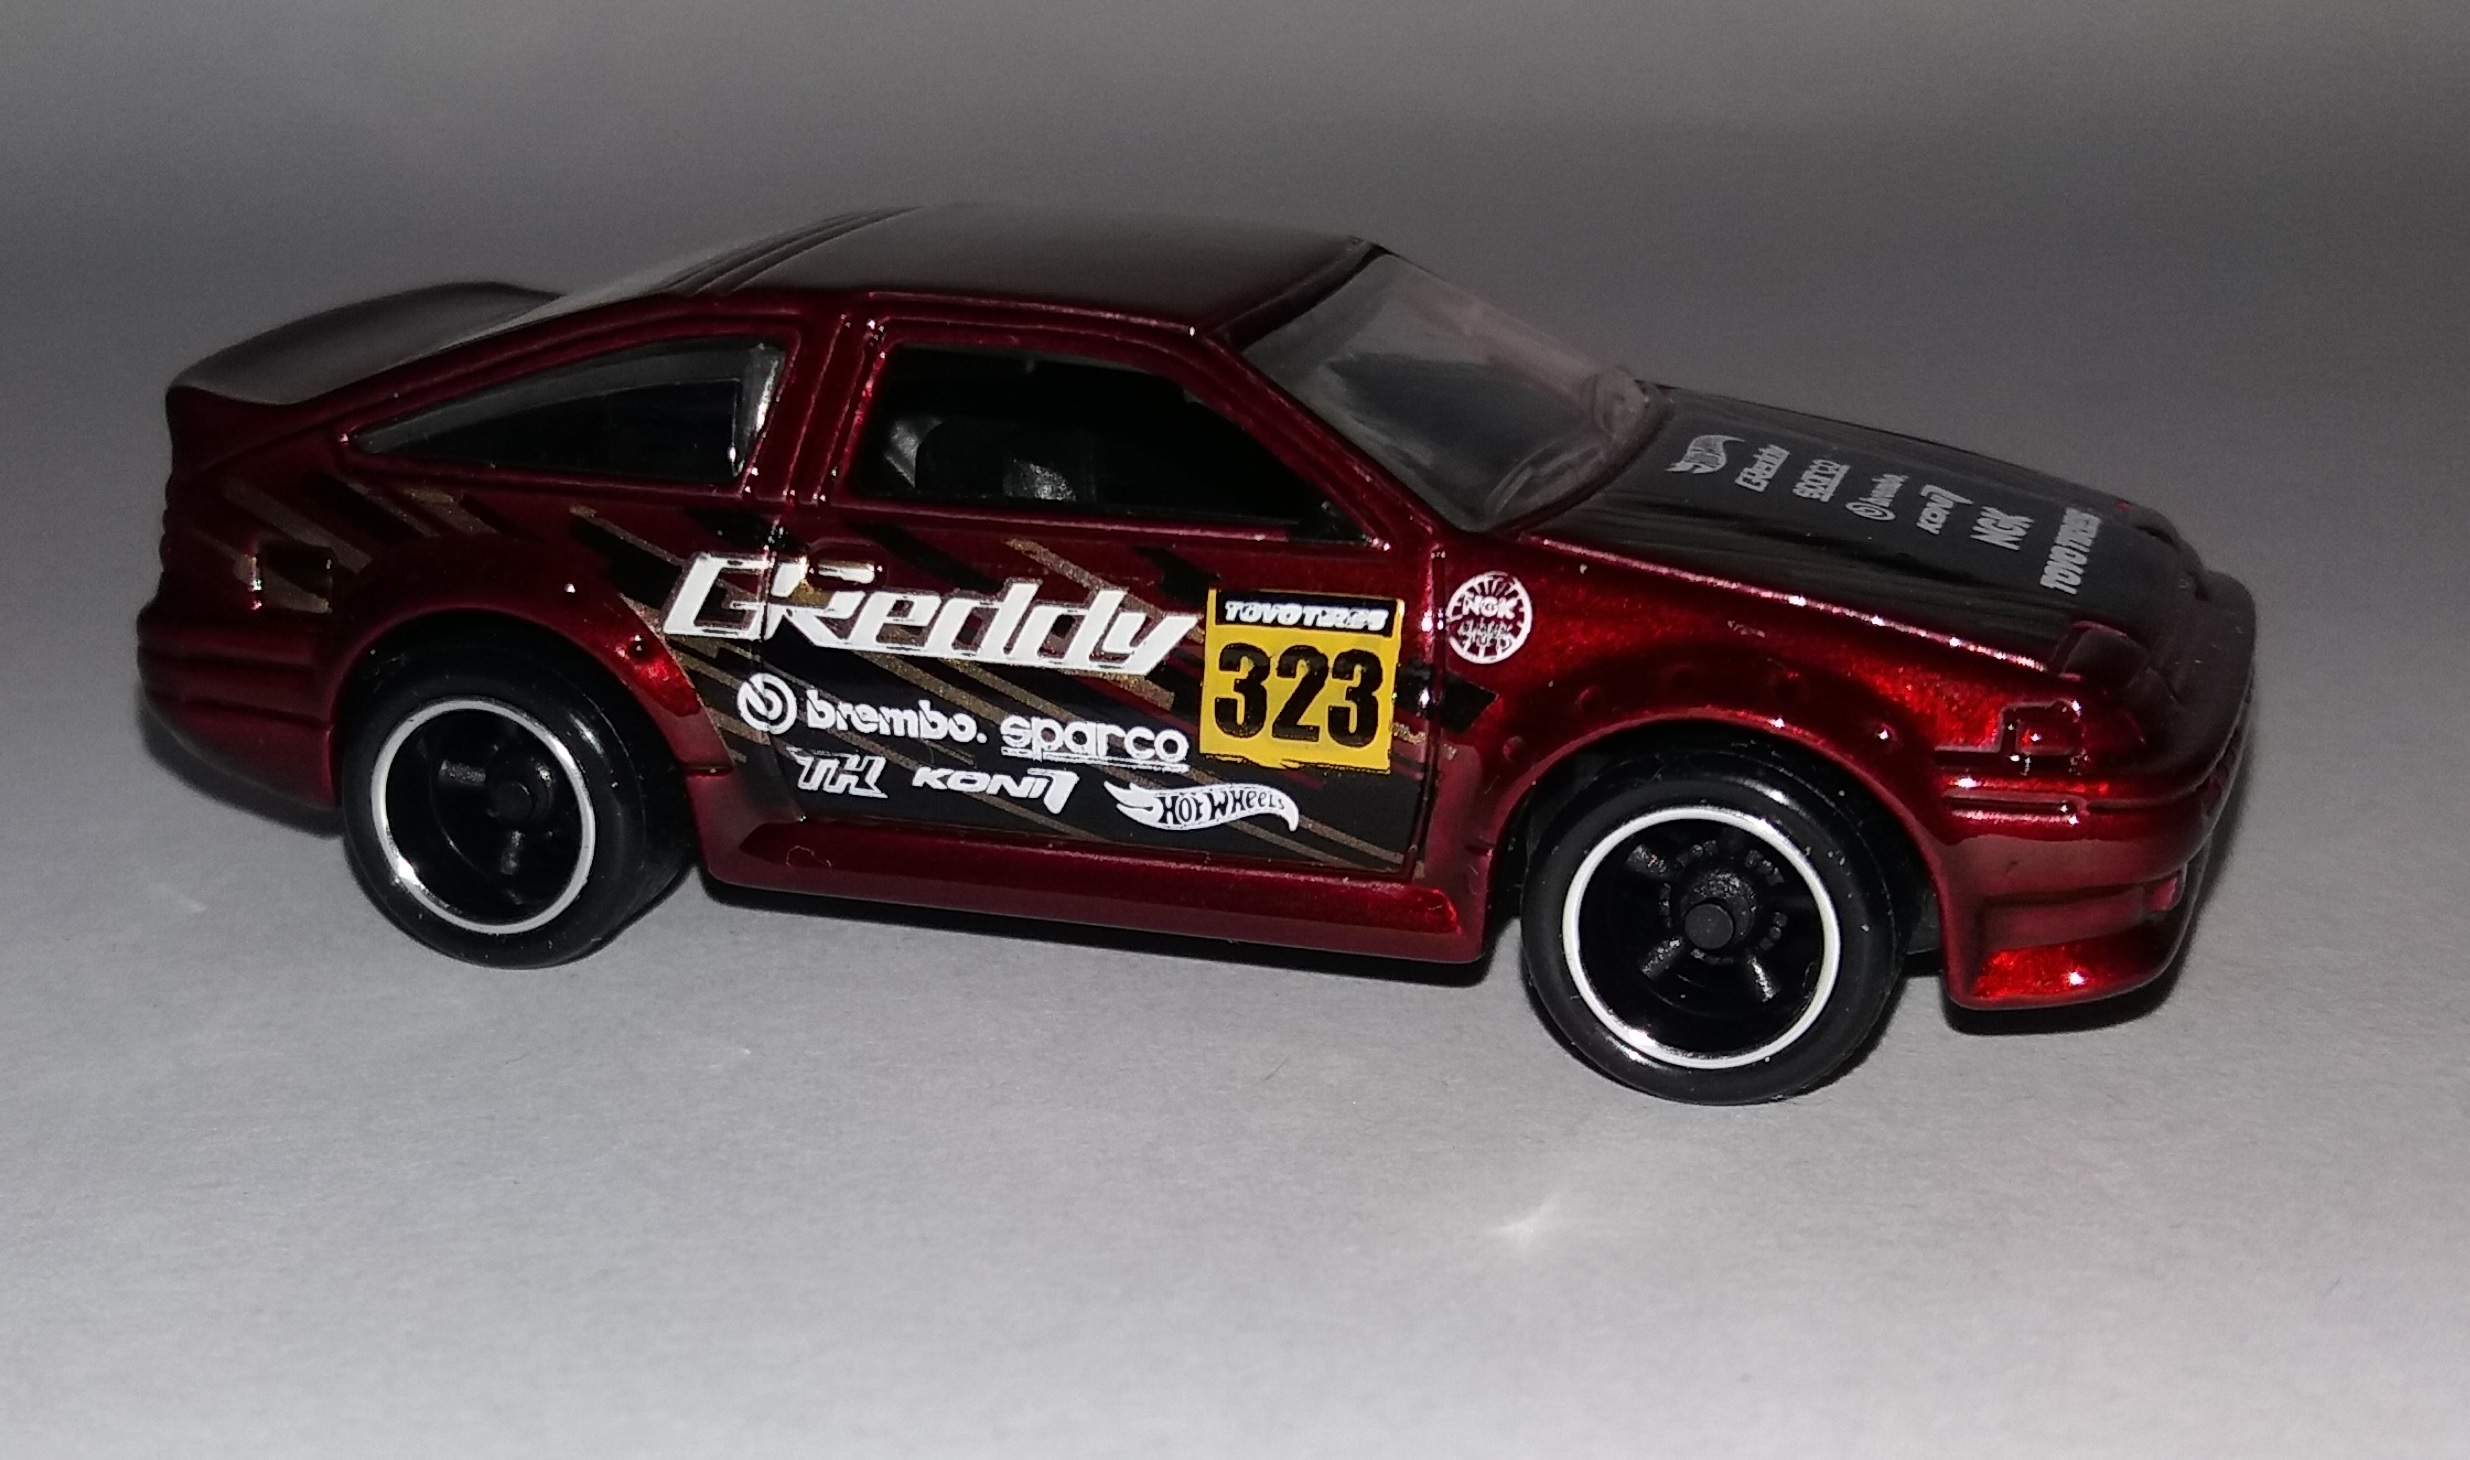 Toyota Ae 86 Corolla Hot Wheels Wiki Fandom Powered By Wikia Hotwheels Red Malaysia Super Treasure Hunt Base Codes